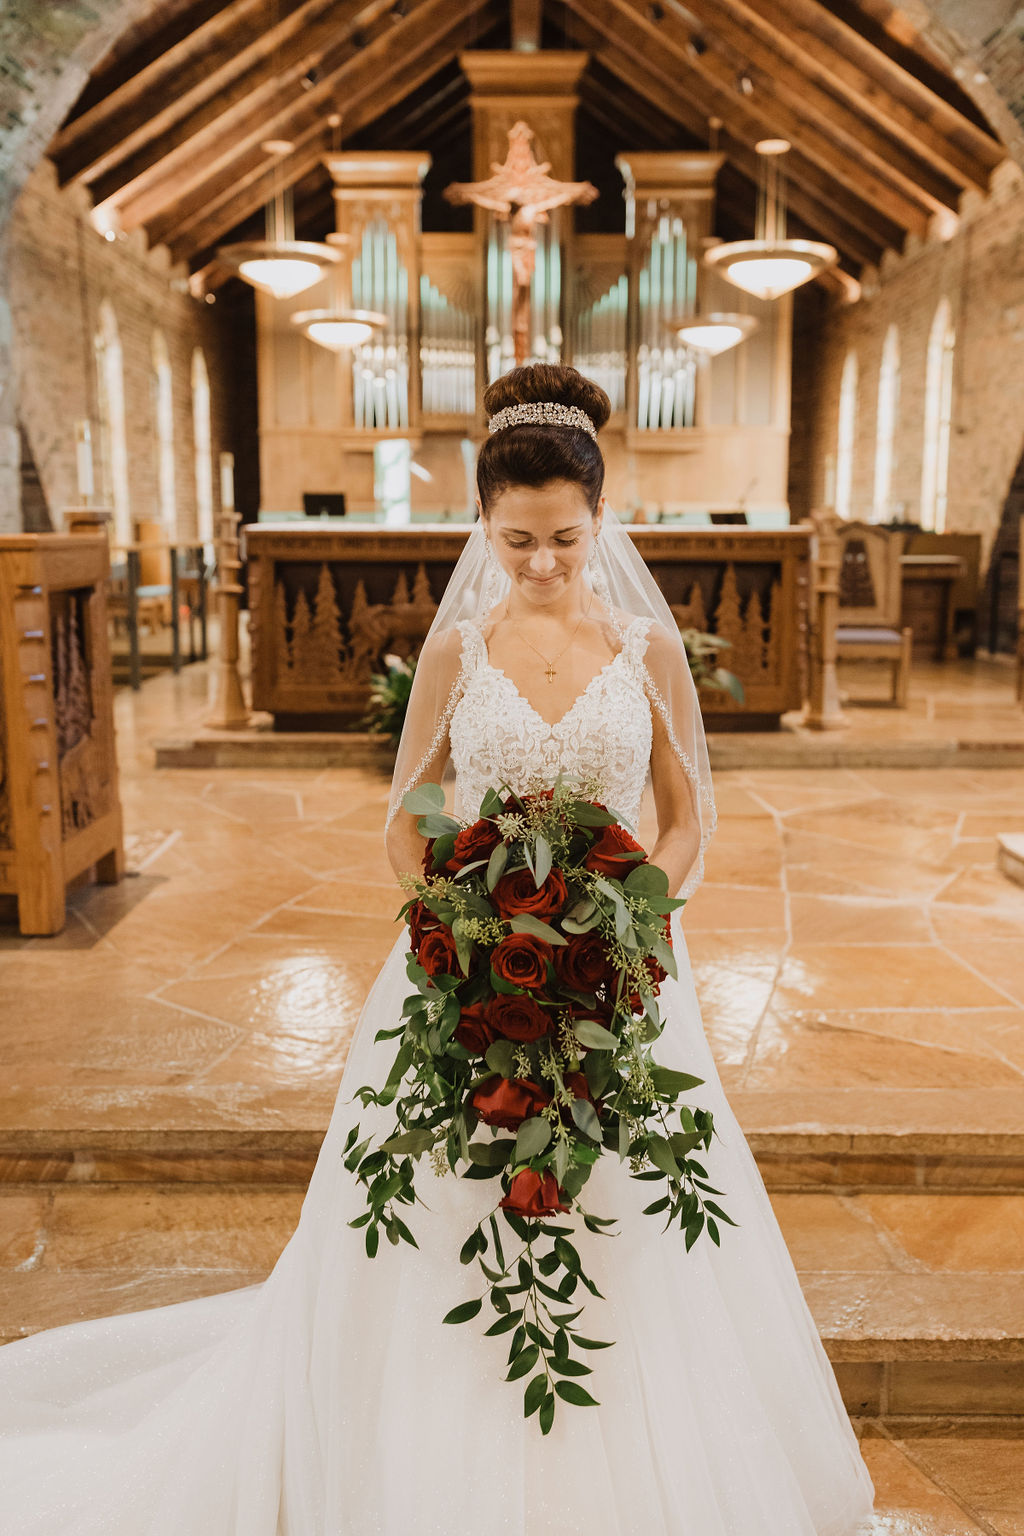 Real Bride Wearing Princess Wedding Dress Called Taylor Lynette by Maggie Sottero